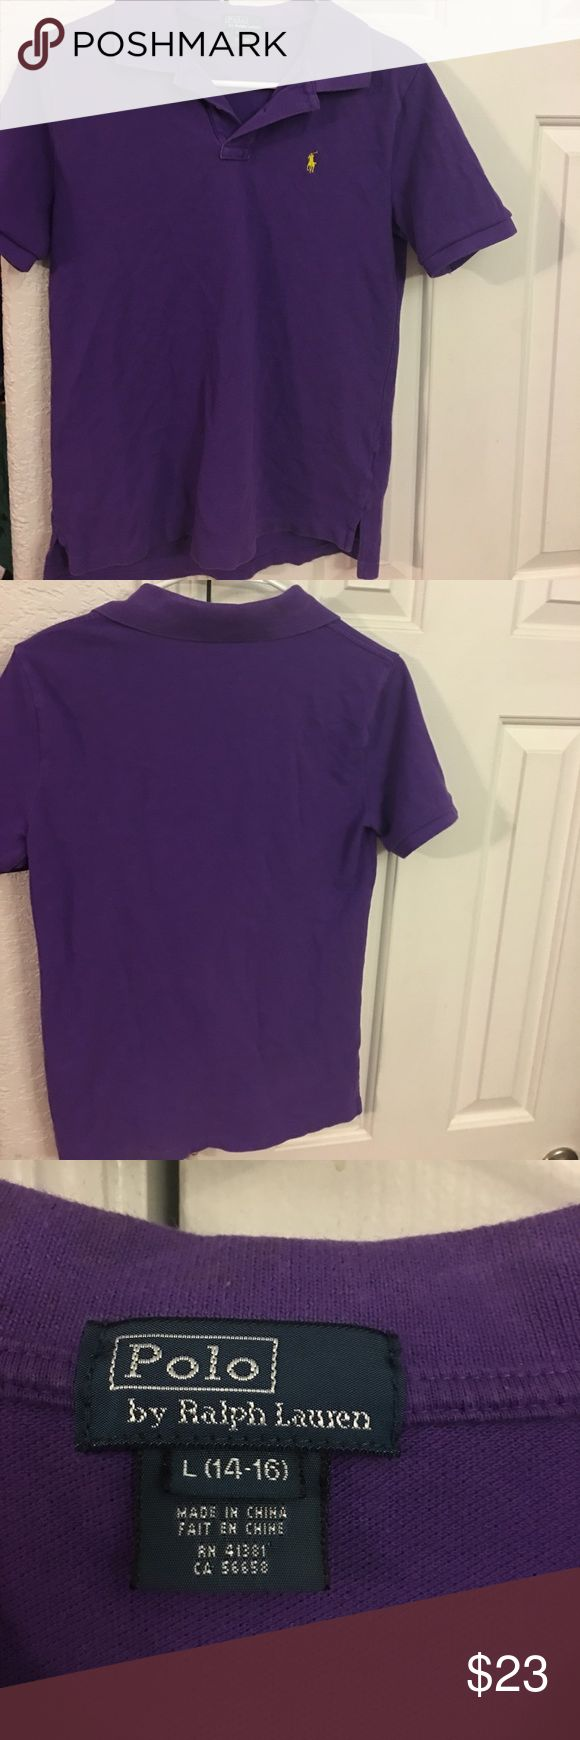 👛Polo By Ralph Lauren Boy's purple polo shirt L Boy's purple polo shirt size L (14-16)  *No Trades** Only Reasonable offers will be considered **sold as is in preowned/ used condition with the expected wear associated with/to preowned used itemssold as is in preowned/ used condition with the expected wear associated with/to preowned used items please see all photos for most accurate condition description Polo by Ralph Lauren Shirts & Tops Polos